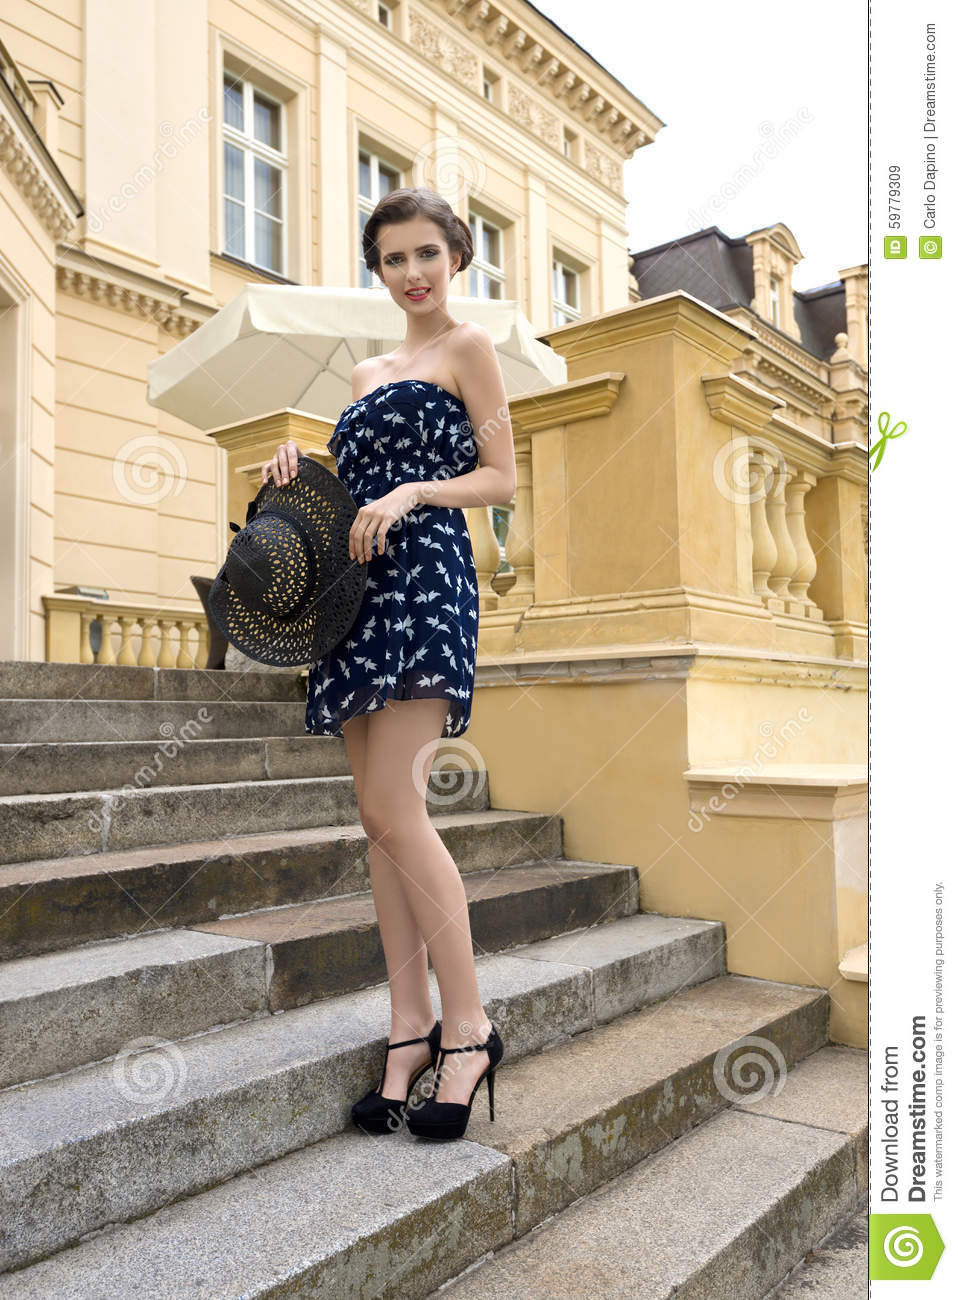 dbed75f45a30 Stylish Elegant Girl In Outdoor Summer Shoot Stock Image - Image of ...